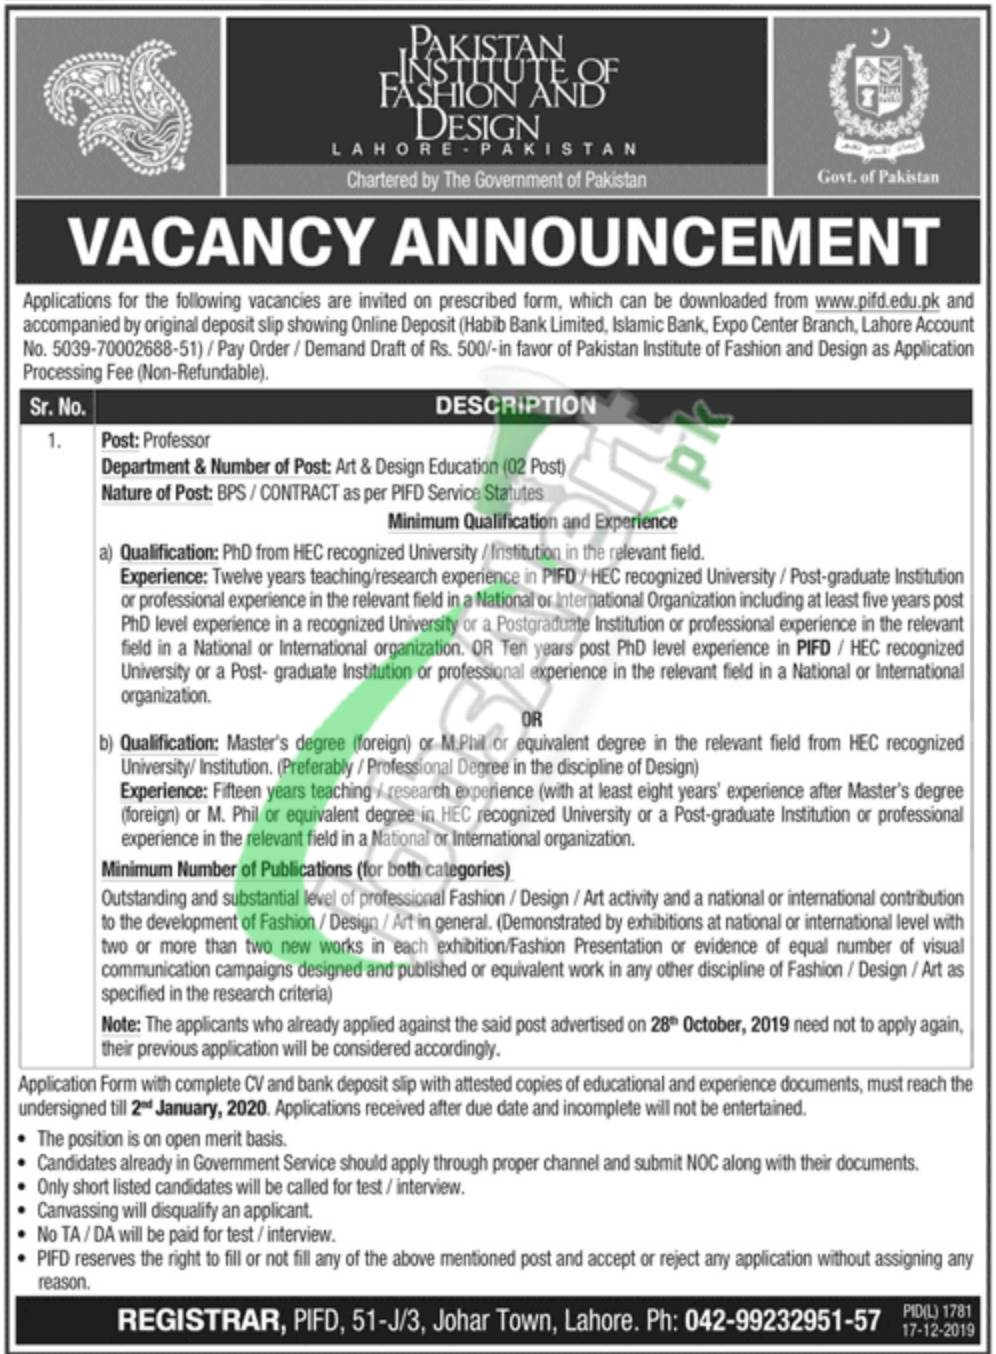 Vacancy Announcement Pakistan Institute of Fashion Design